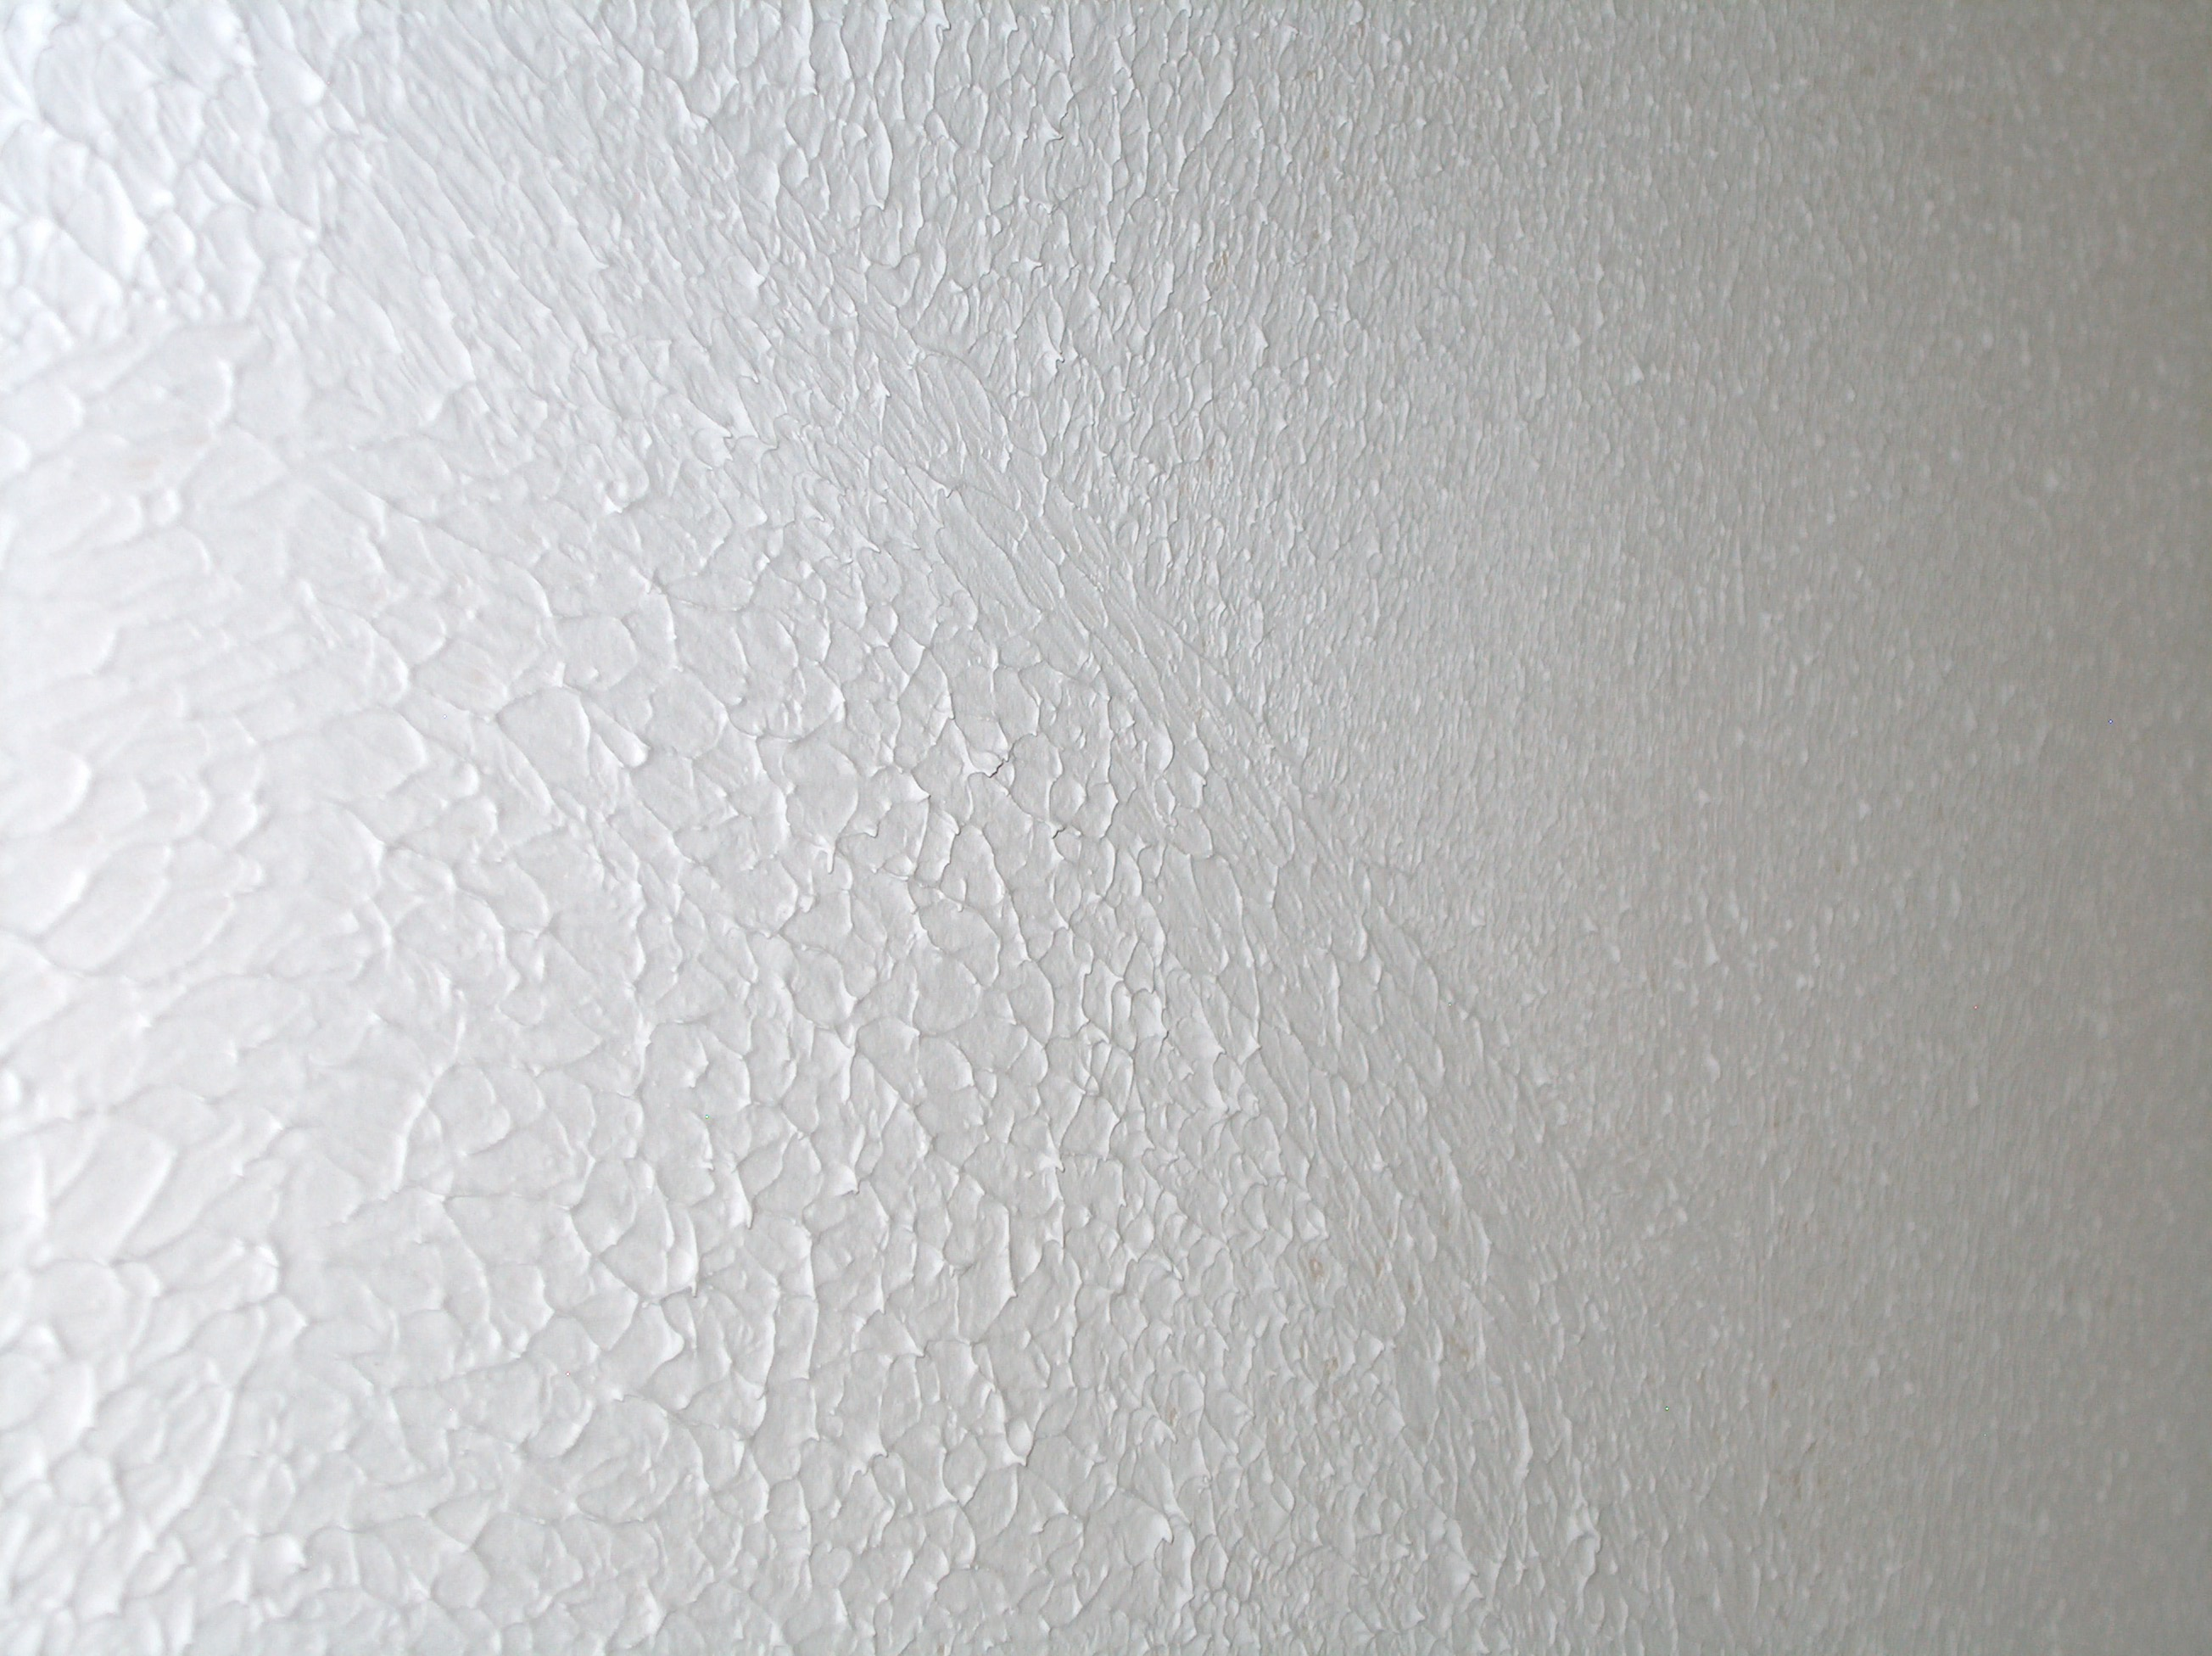 Texturing Ceilings with joint compound and texture brush The